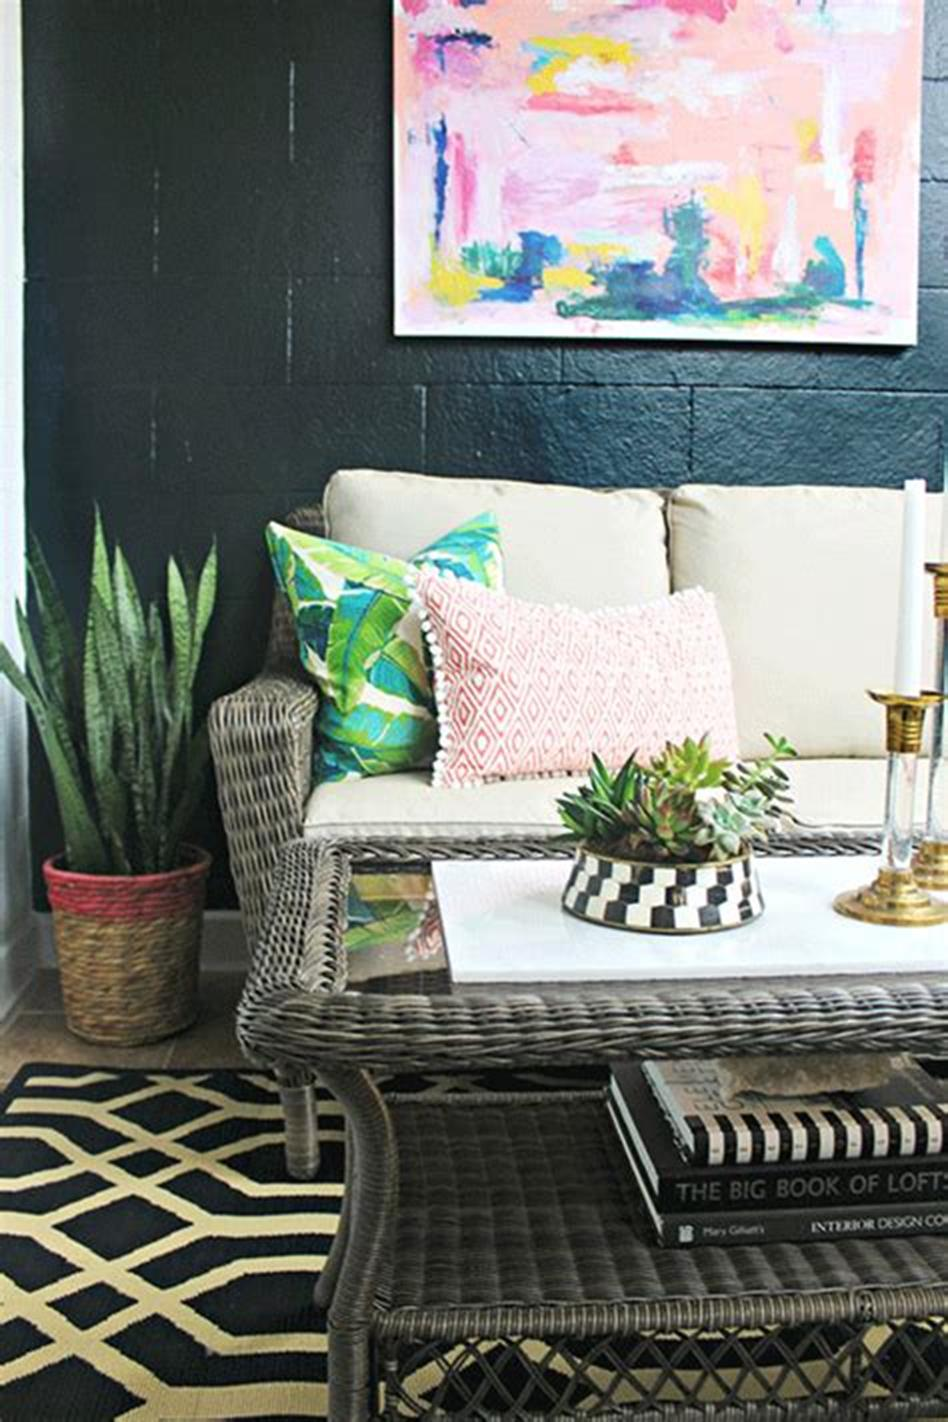 50 Most Popular Affordable Sunroom Design Ideas on a Budget 44